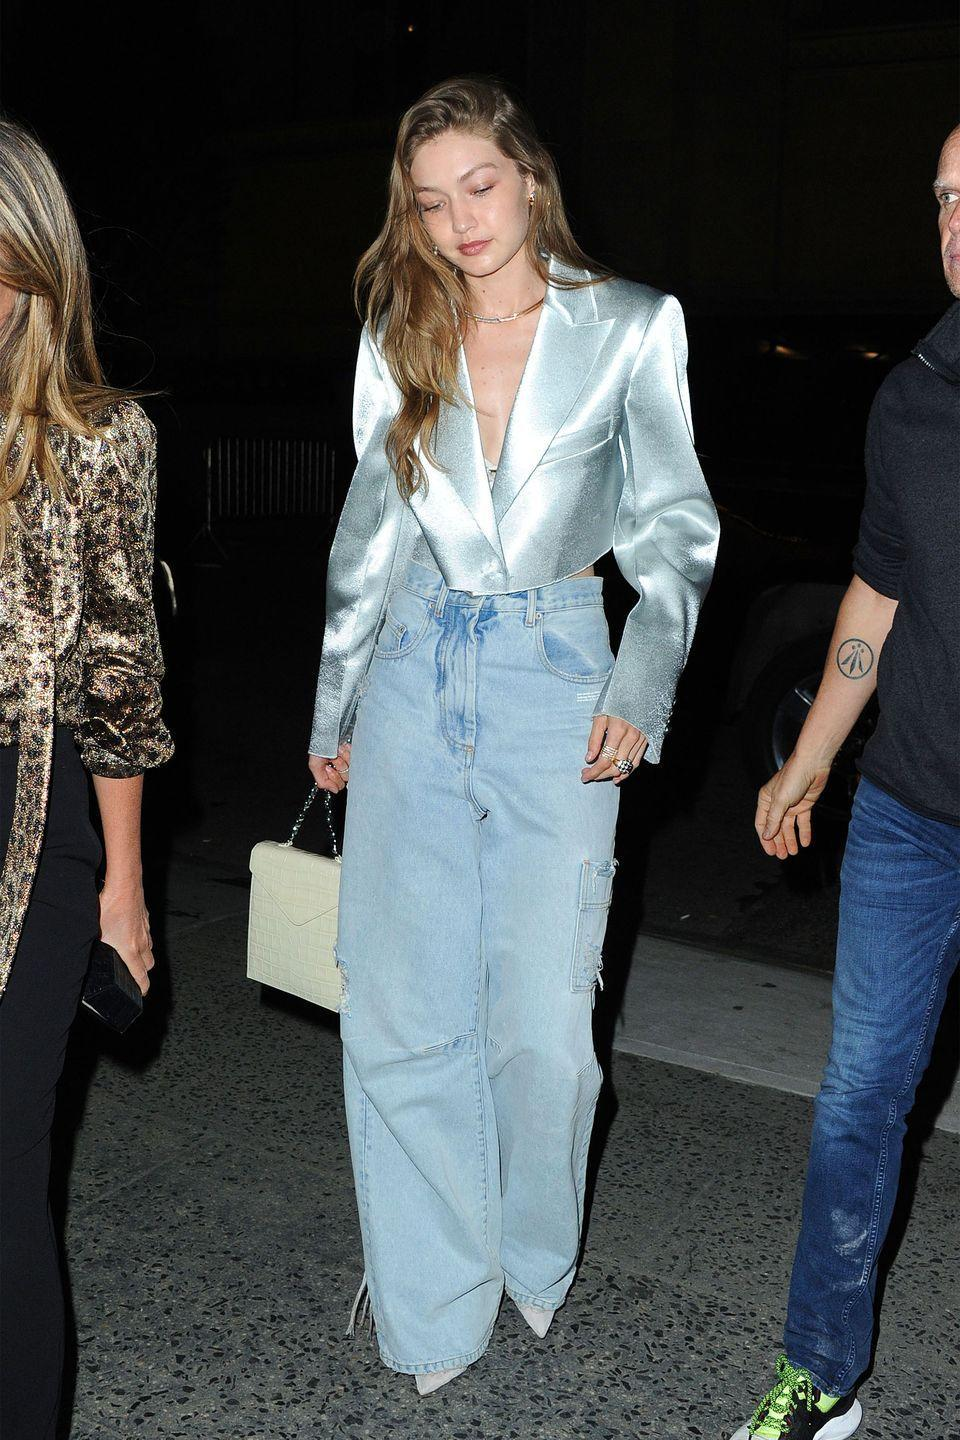 """<p>In a silver cropped blazer and high-waisted oversize jeans by Off-White and a <a href=""""https://www.net-a-porter.com/us/en/product/1113412/BY_FAR/allegra-croc-effect-leather-shoulder-bag"""" rel=""""nofollow noopener"""" target=""""_blank"""" data-ylk=""""slk:cream crocodile bag by By Far"""" class=""""link rapid-noclick-resp"""">cream crocodile bag by By Far</a>.</p>"""